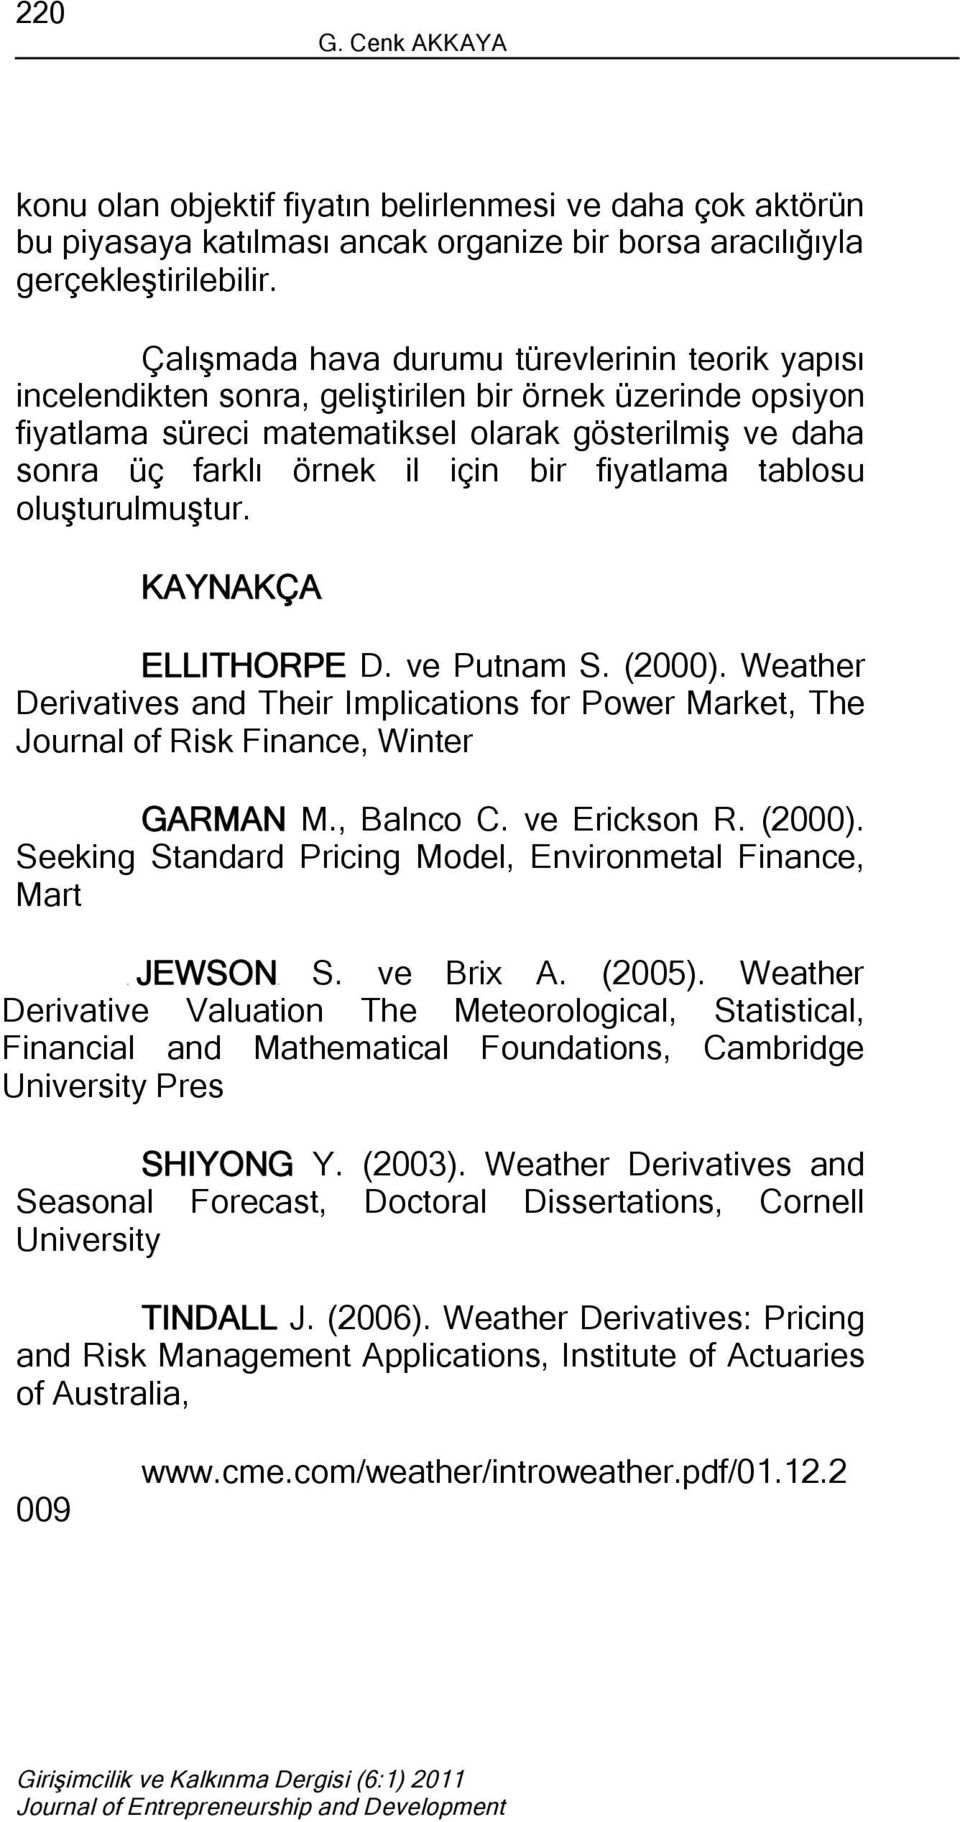 bir fiyatlama tablosu oluşturulmuştur. KAYNAKÇA ELLITHORPE D. ve Putnam S. (2000). Weather Derivatives and Their Implications for Power Market, The Journal of Risk Finance, Winter GARMAN M., Balnco C.